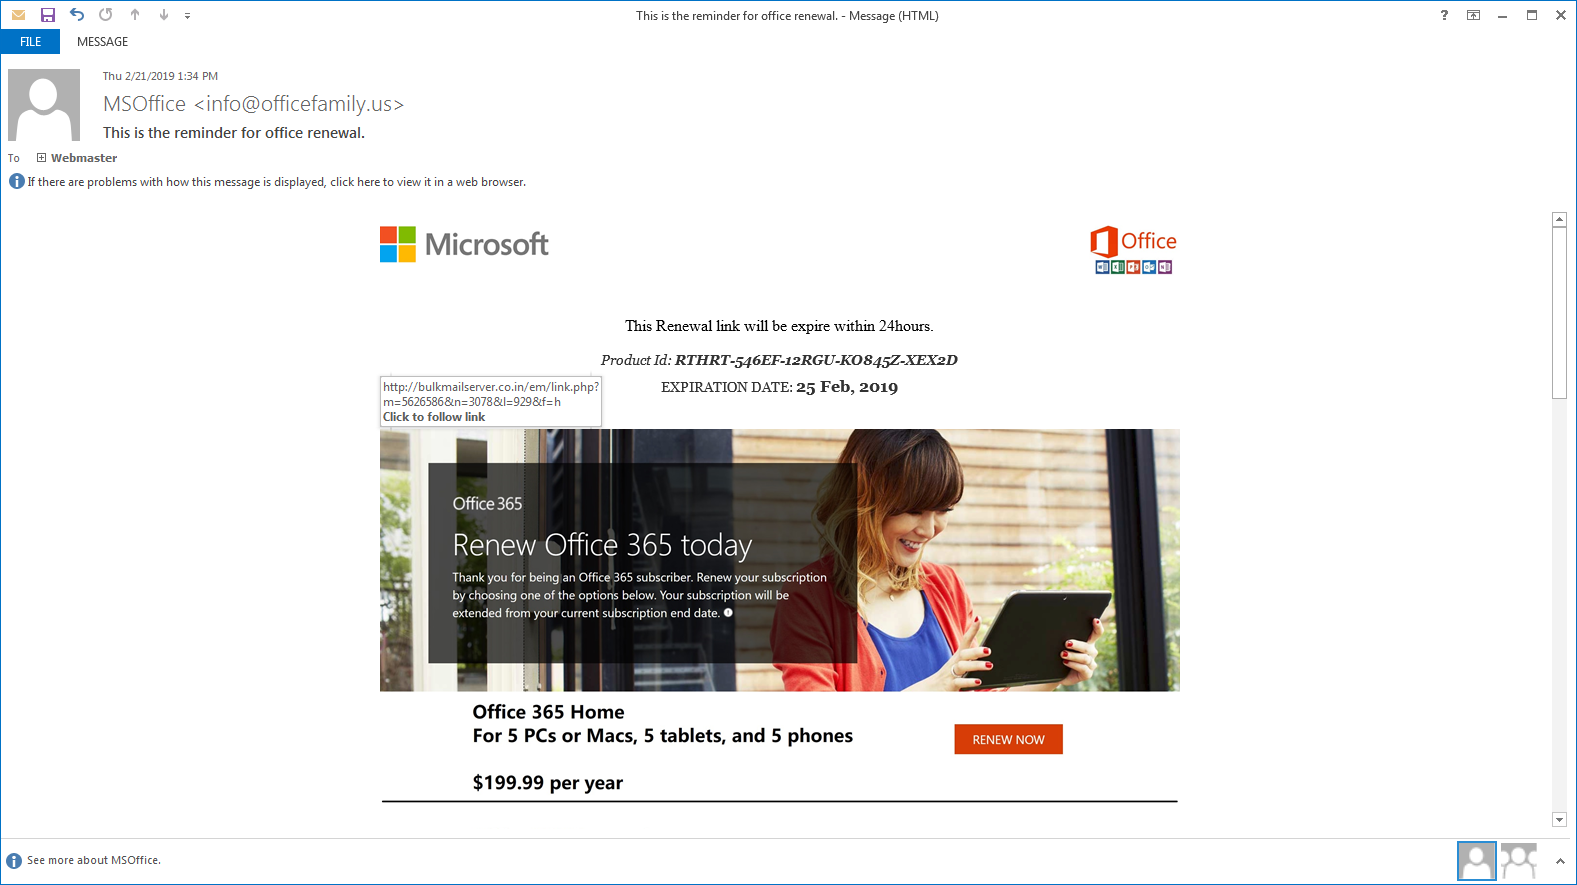 microsoft office 365 home support